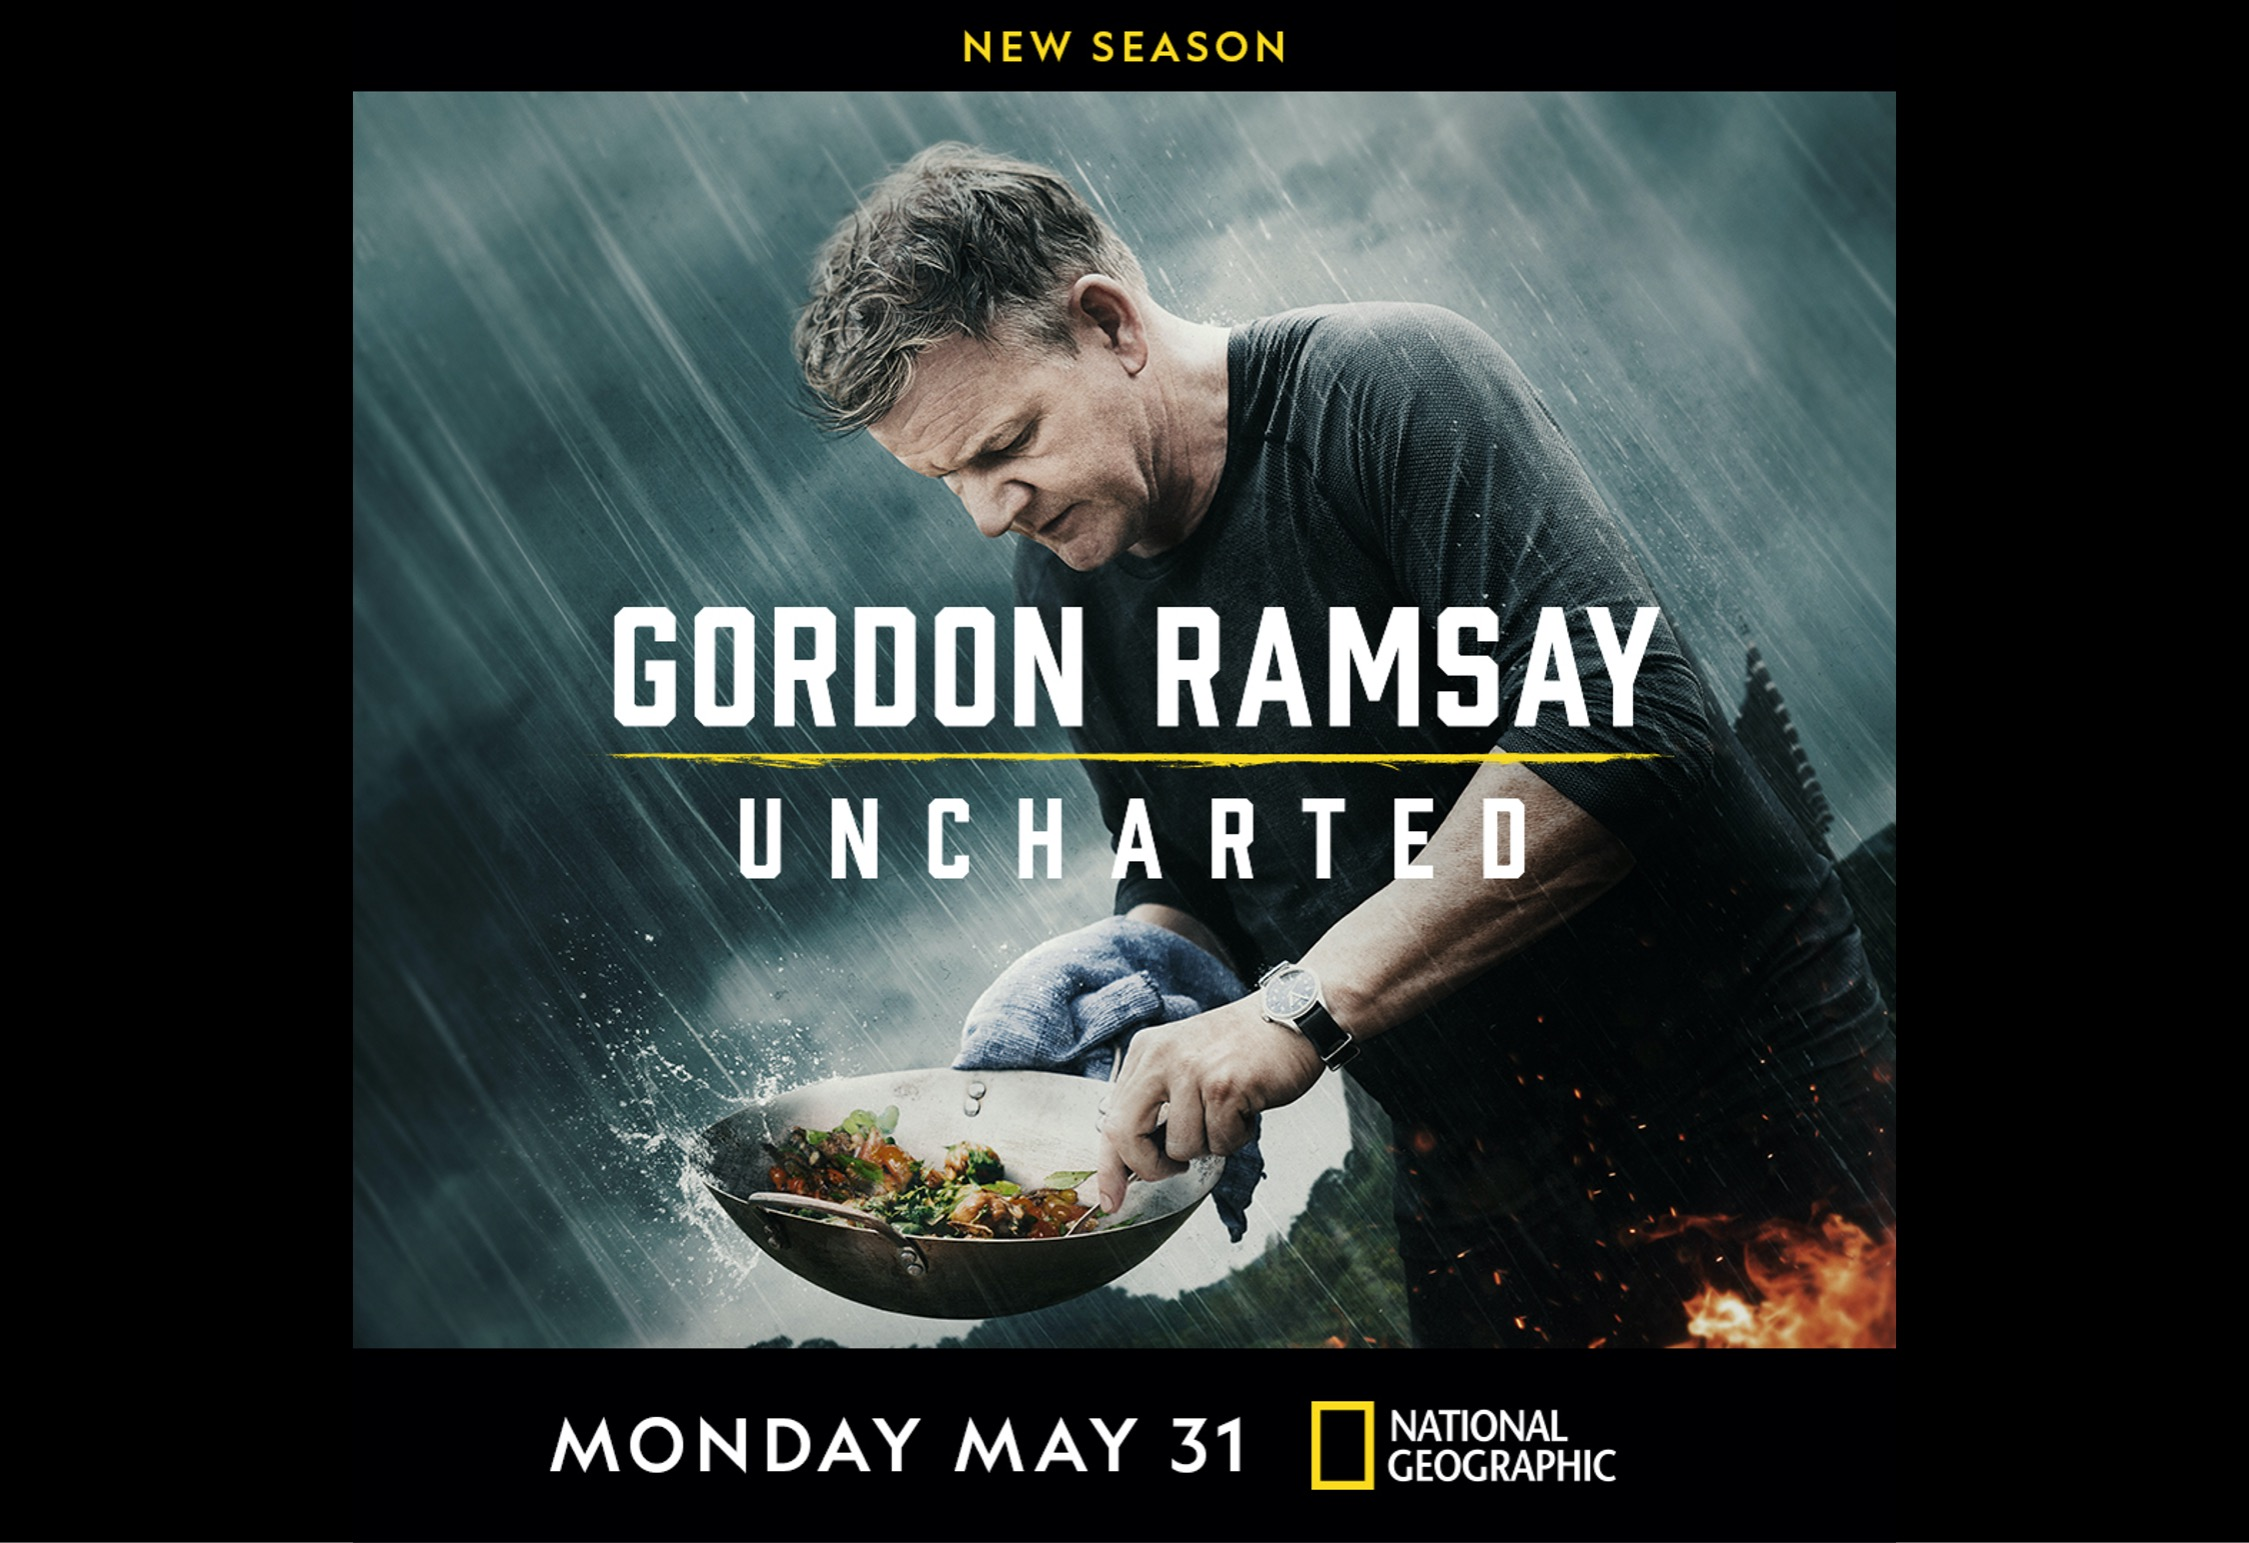 National Geographic's Cooking Expedition Series 'Gordon Ramsay: Uncharted' Serves Up the Season Three Premiere this Memorial Day at 9/8c, Available Next Day on Disney+